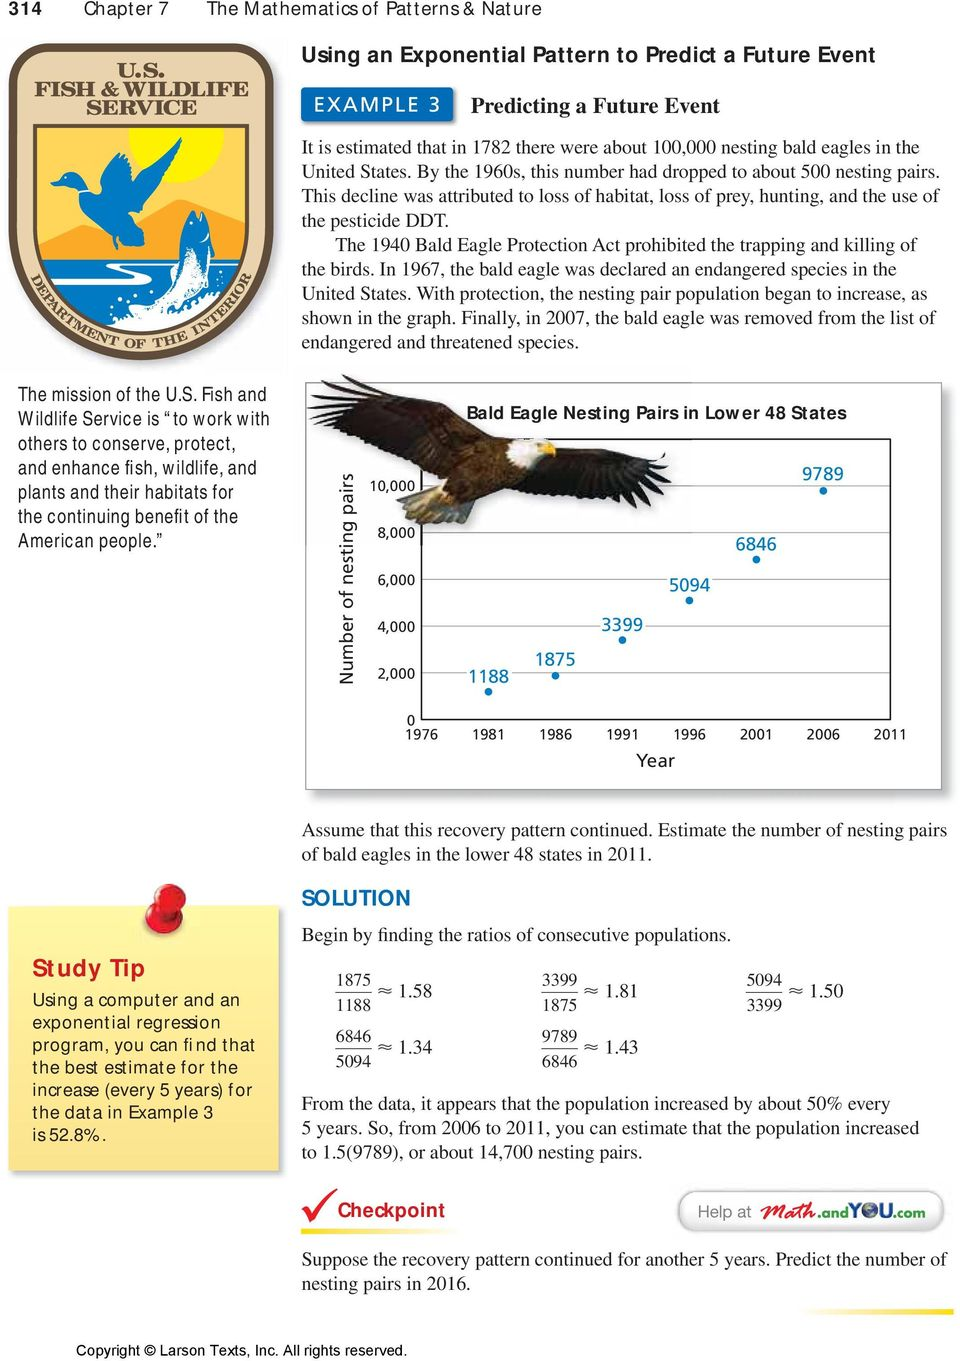 The 194 Bald Eagle Protection Act prohibited the trapping and killing of the birds. In 1967, the bald eagle was declared an endangered species in the United States.